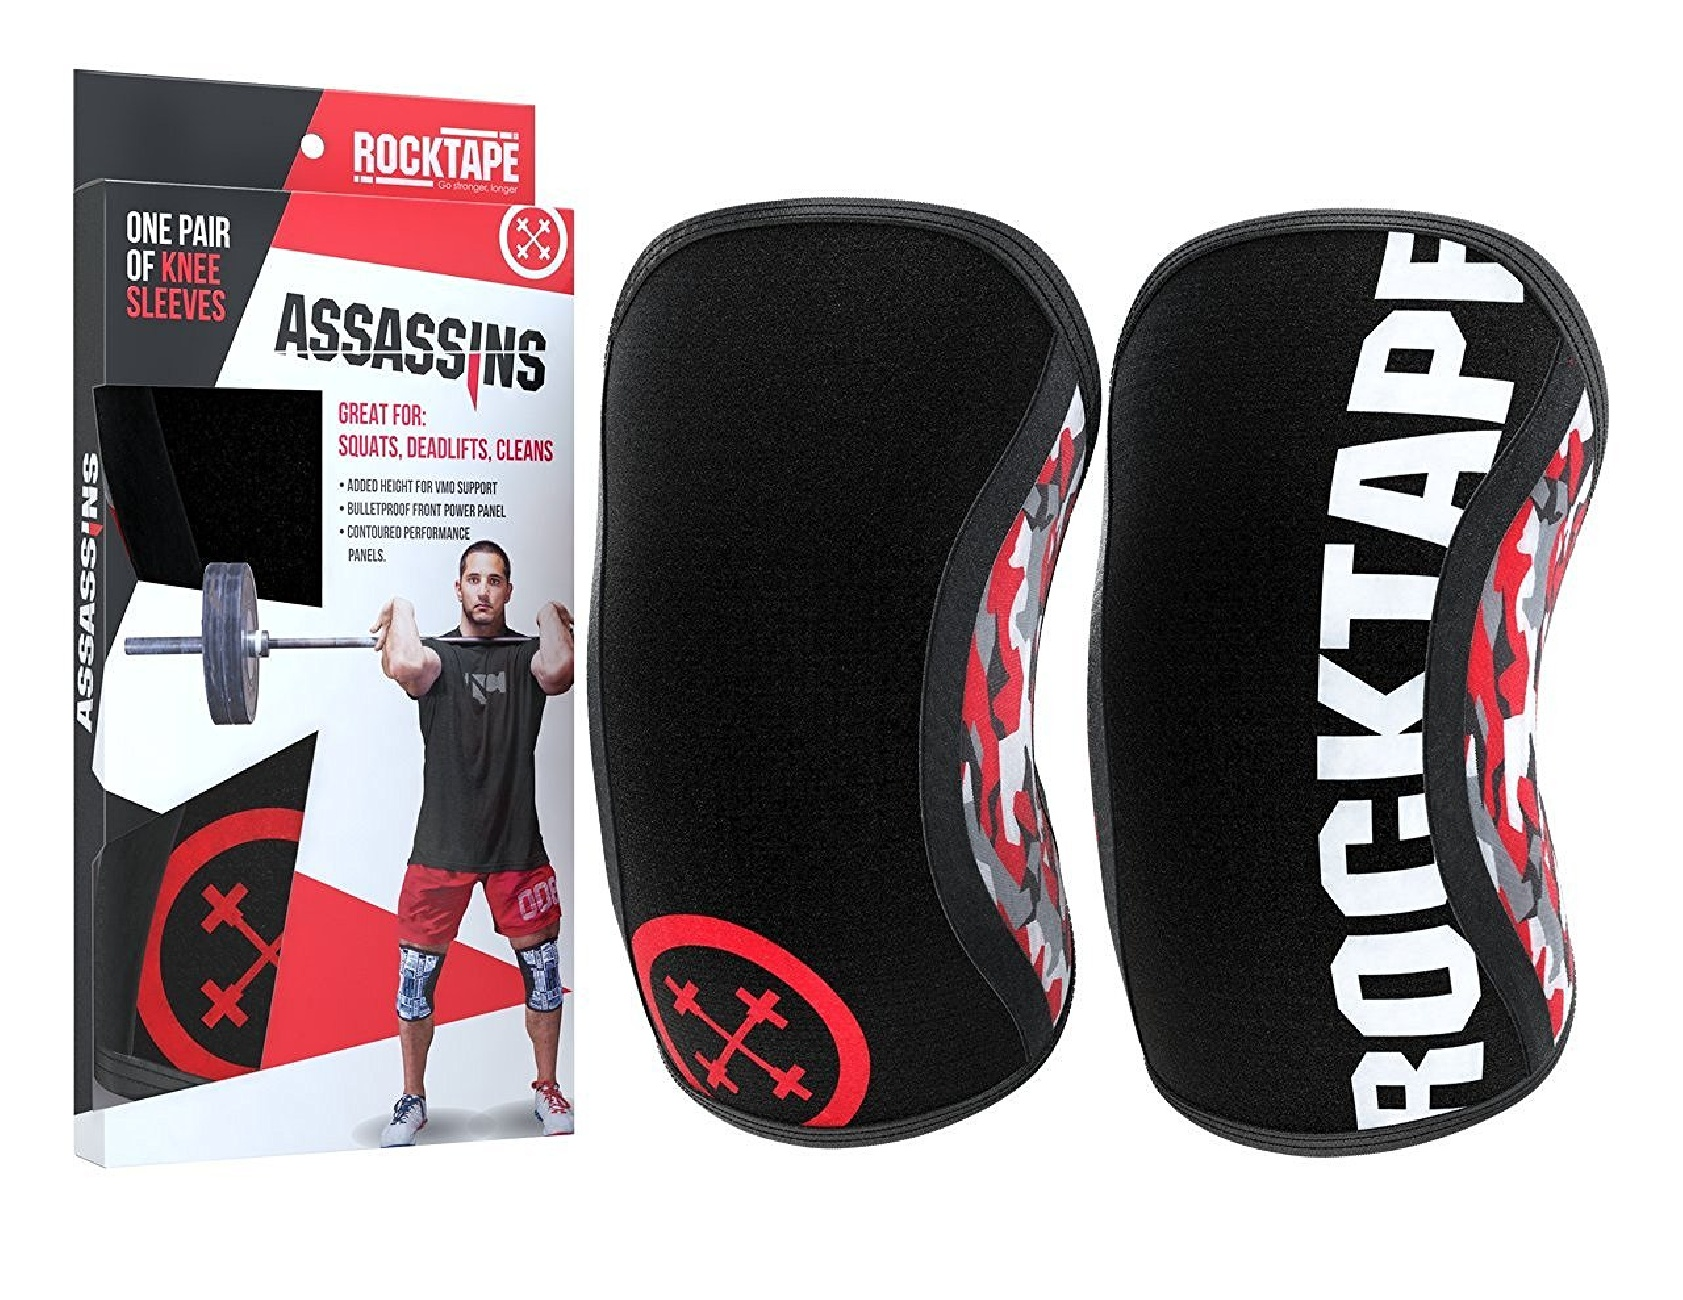 Rocktape Assassins Knee Sleeves and Protectors Red Camo